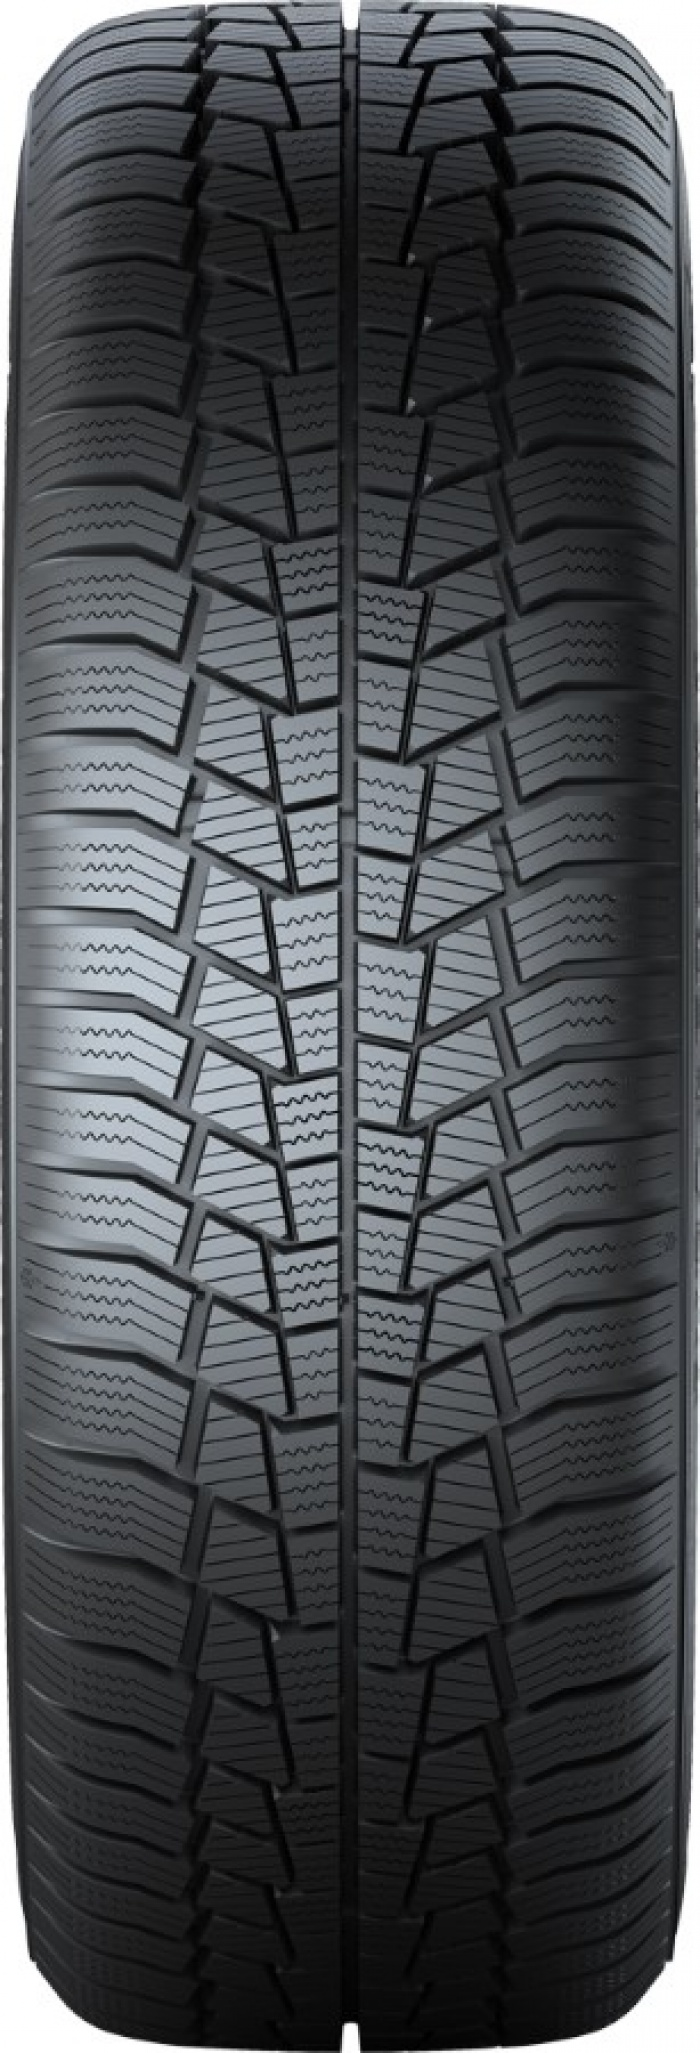 Gislaved Euro Frost 6 225/45 R17 91H